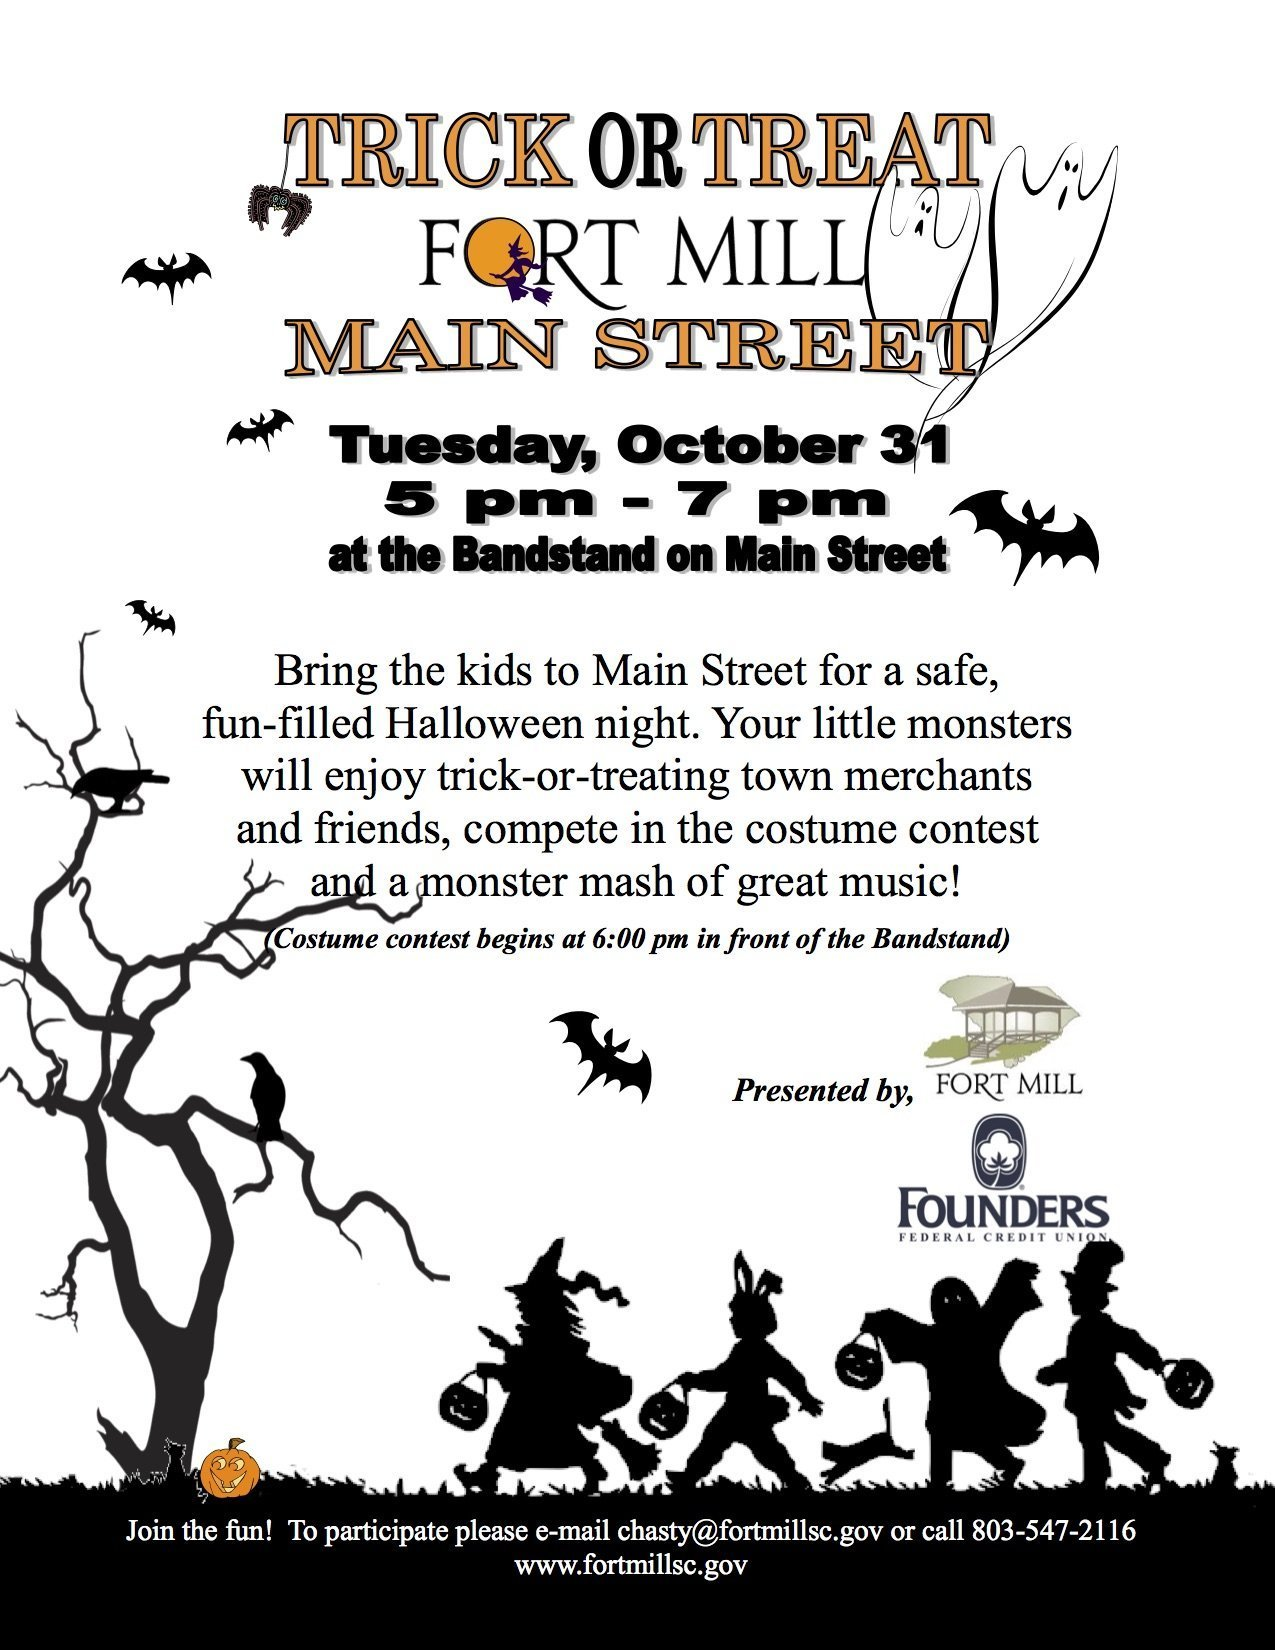 Trick-or-Treat on Main Street Tuesday, October 31st 5PM – 7PM